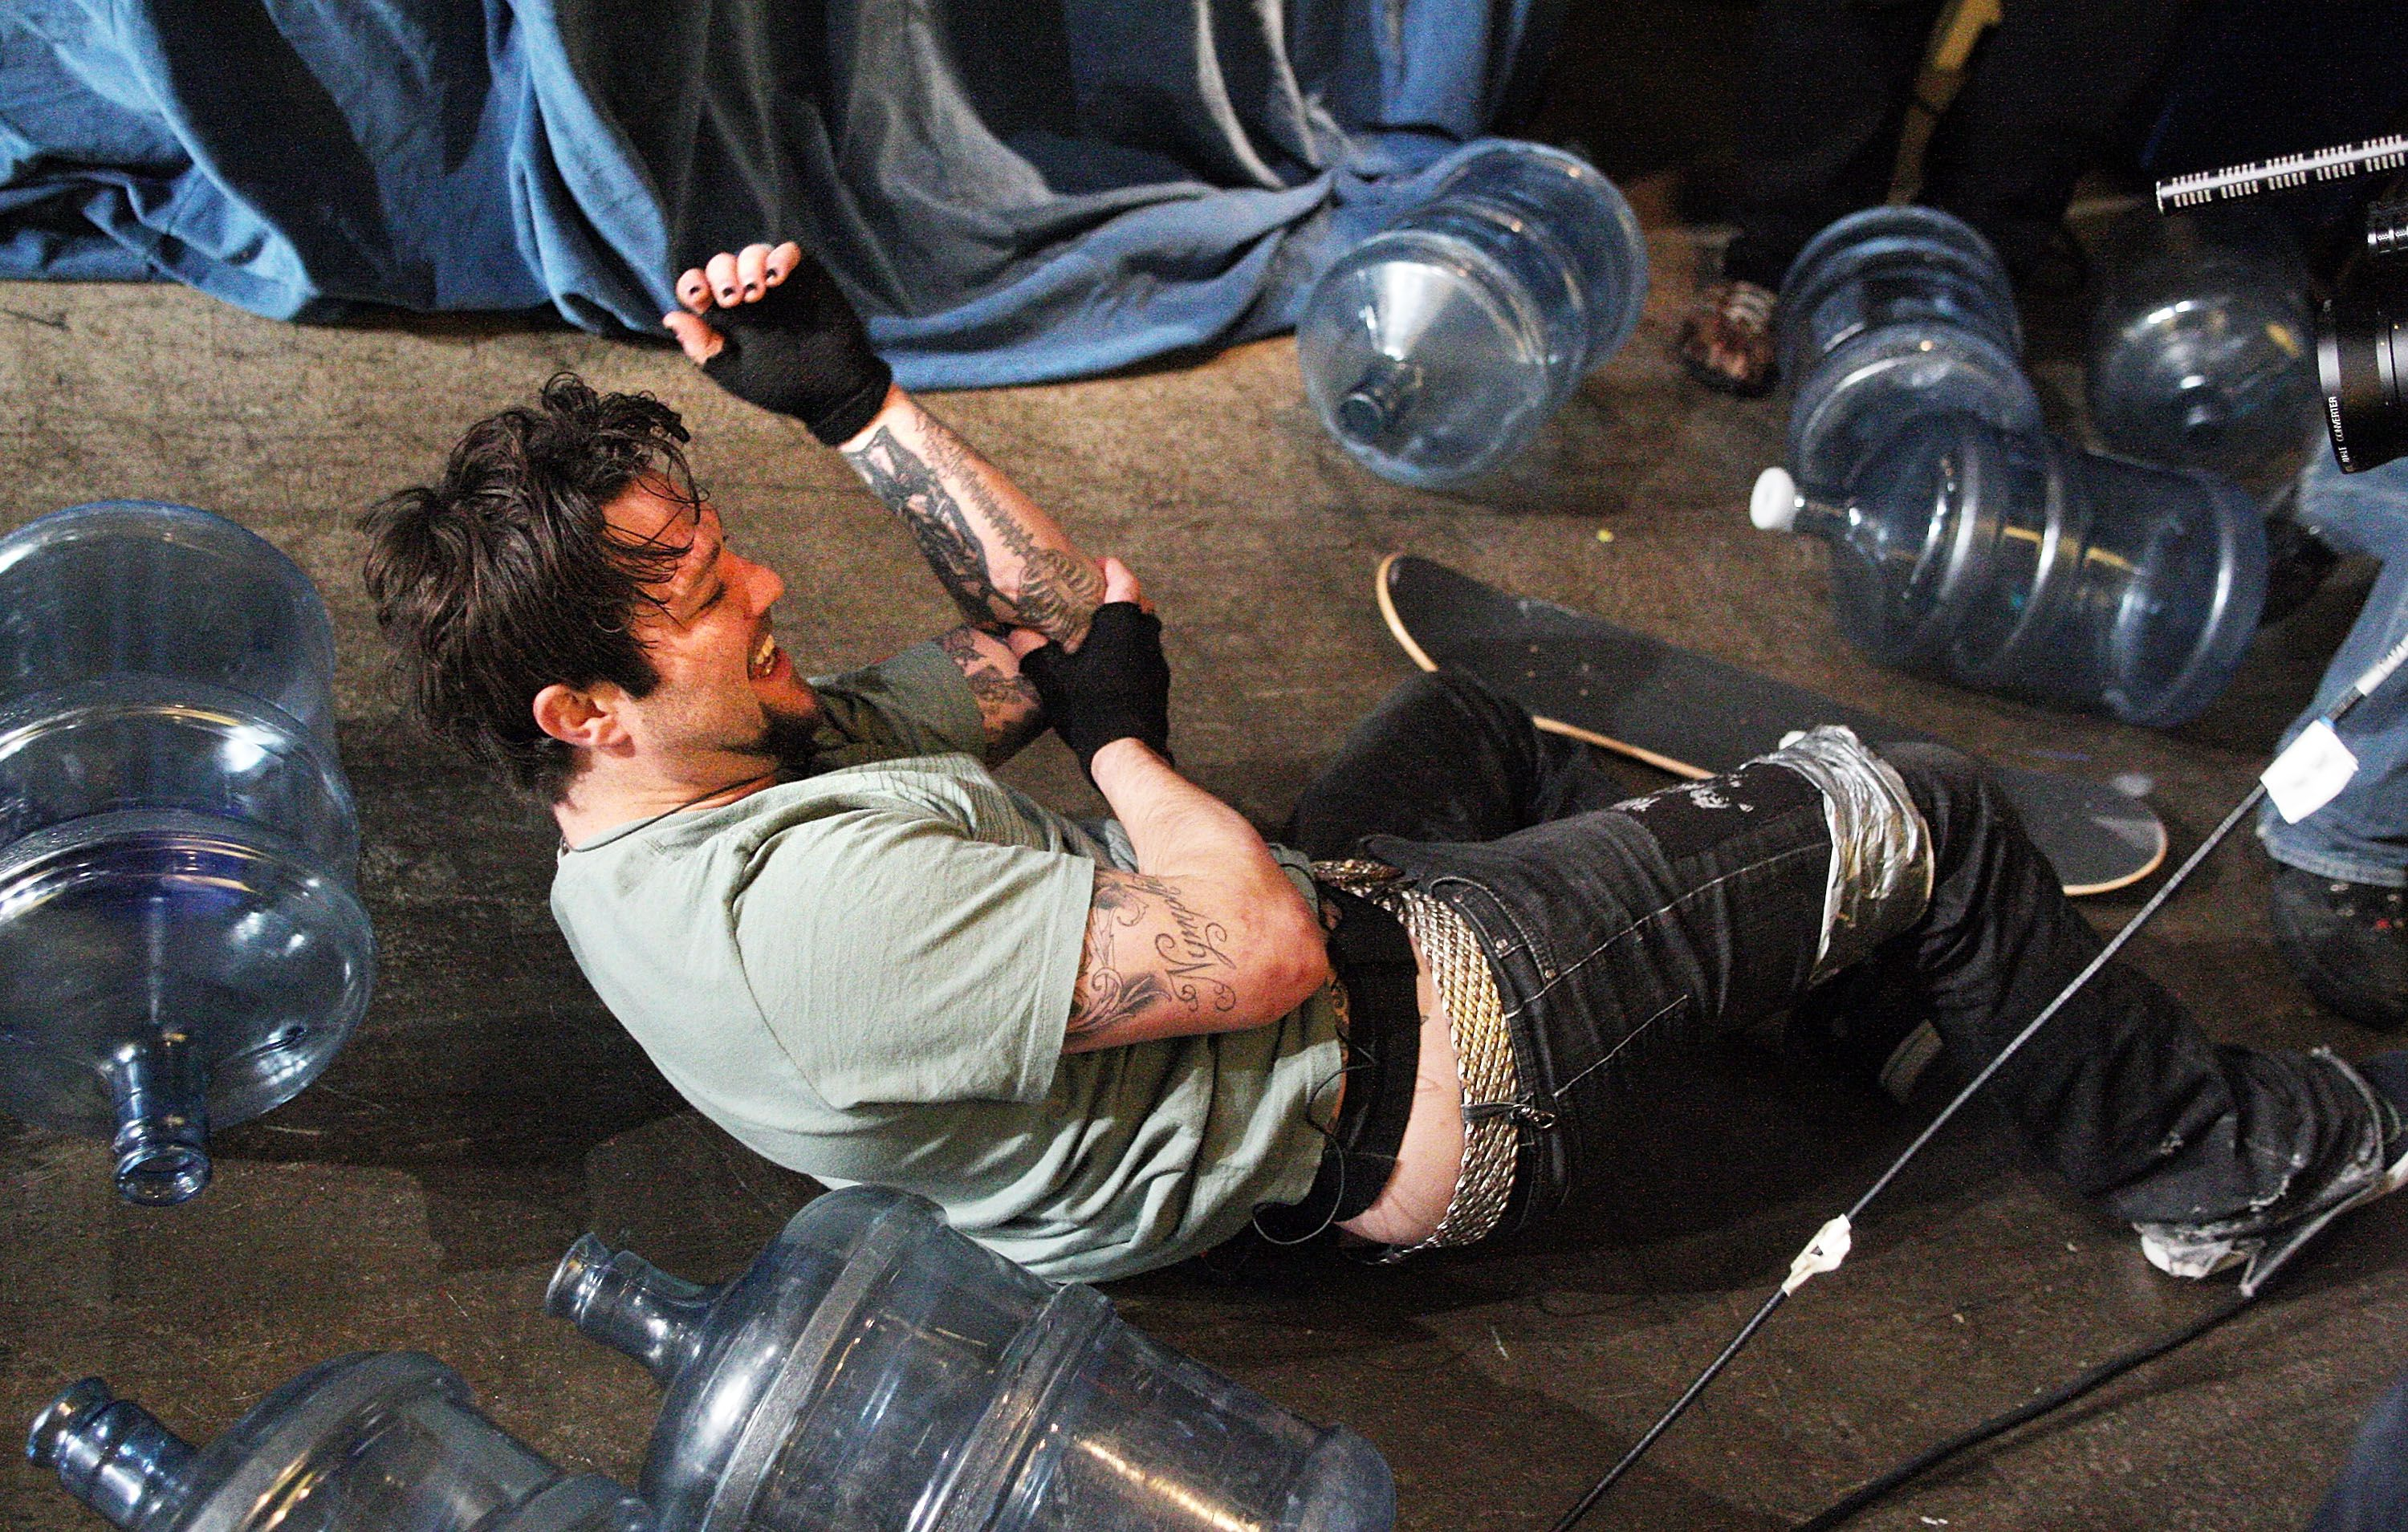 Bam Margera getting injured in a skateboarding fall without safety equipment